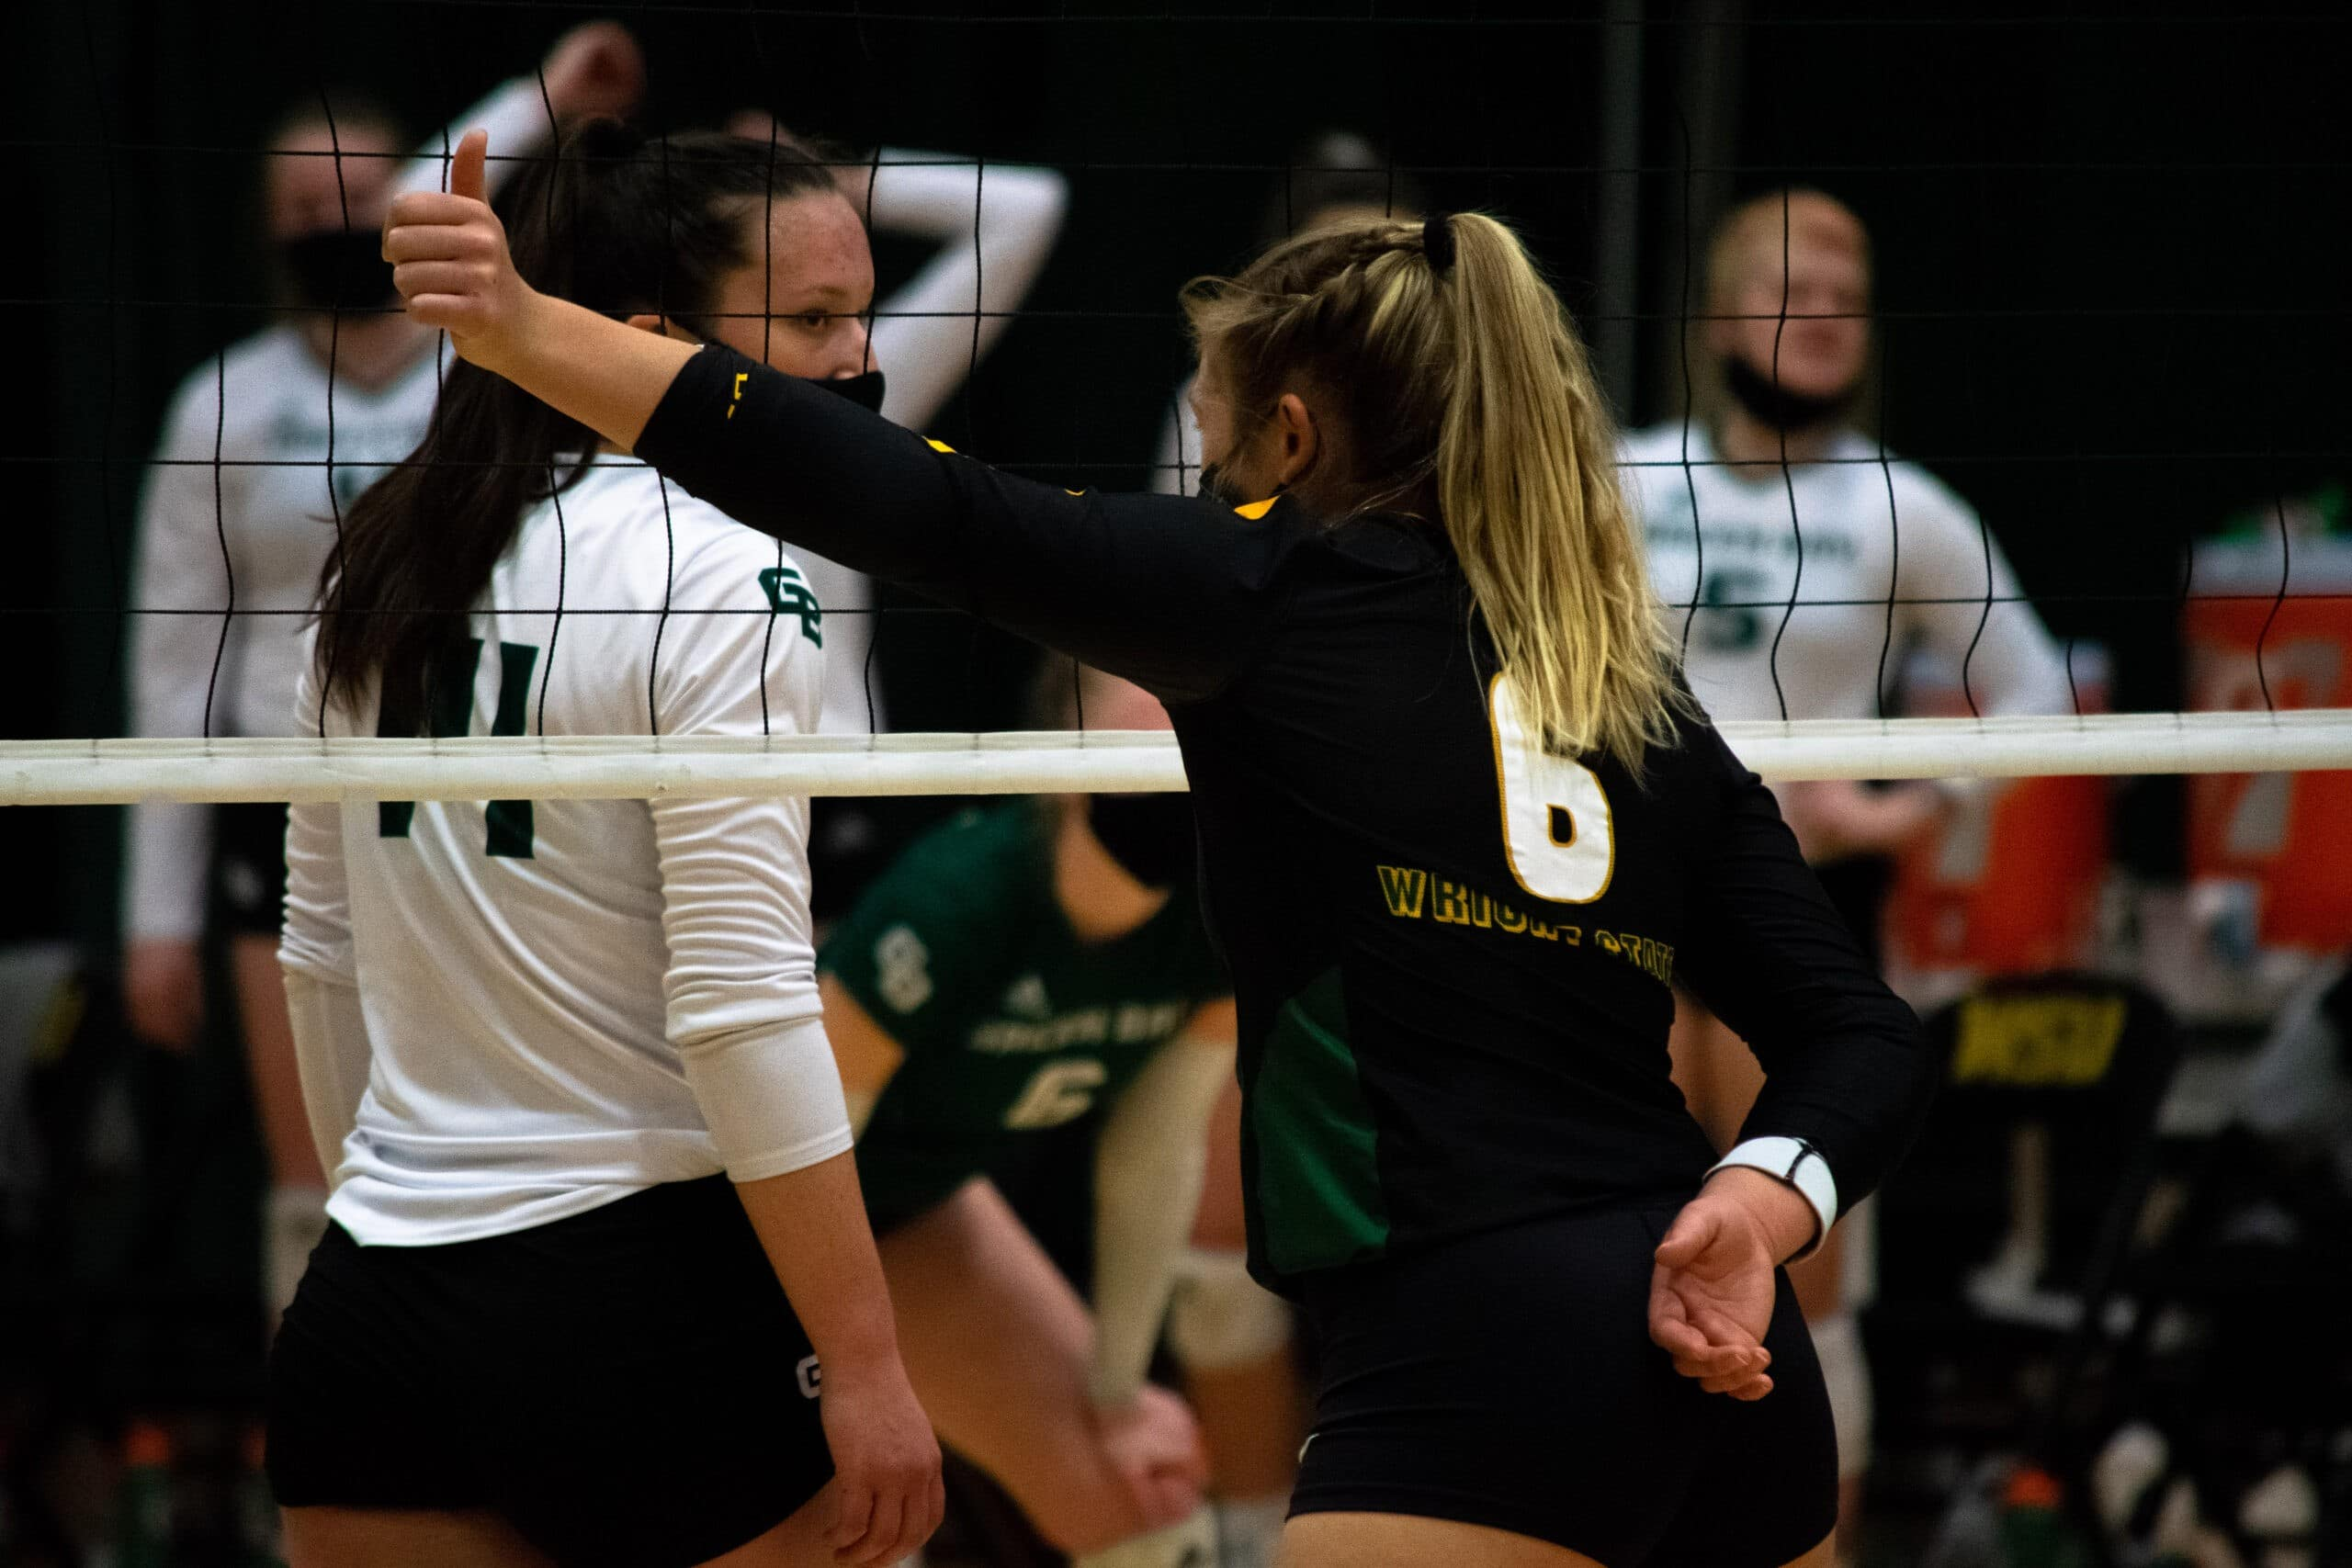 Wright State Raiders vs. Green Bay Women's Volleyball Game on March 22, 2021